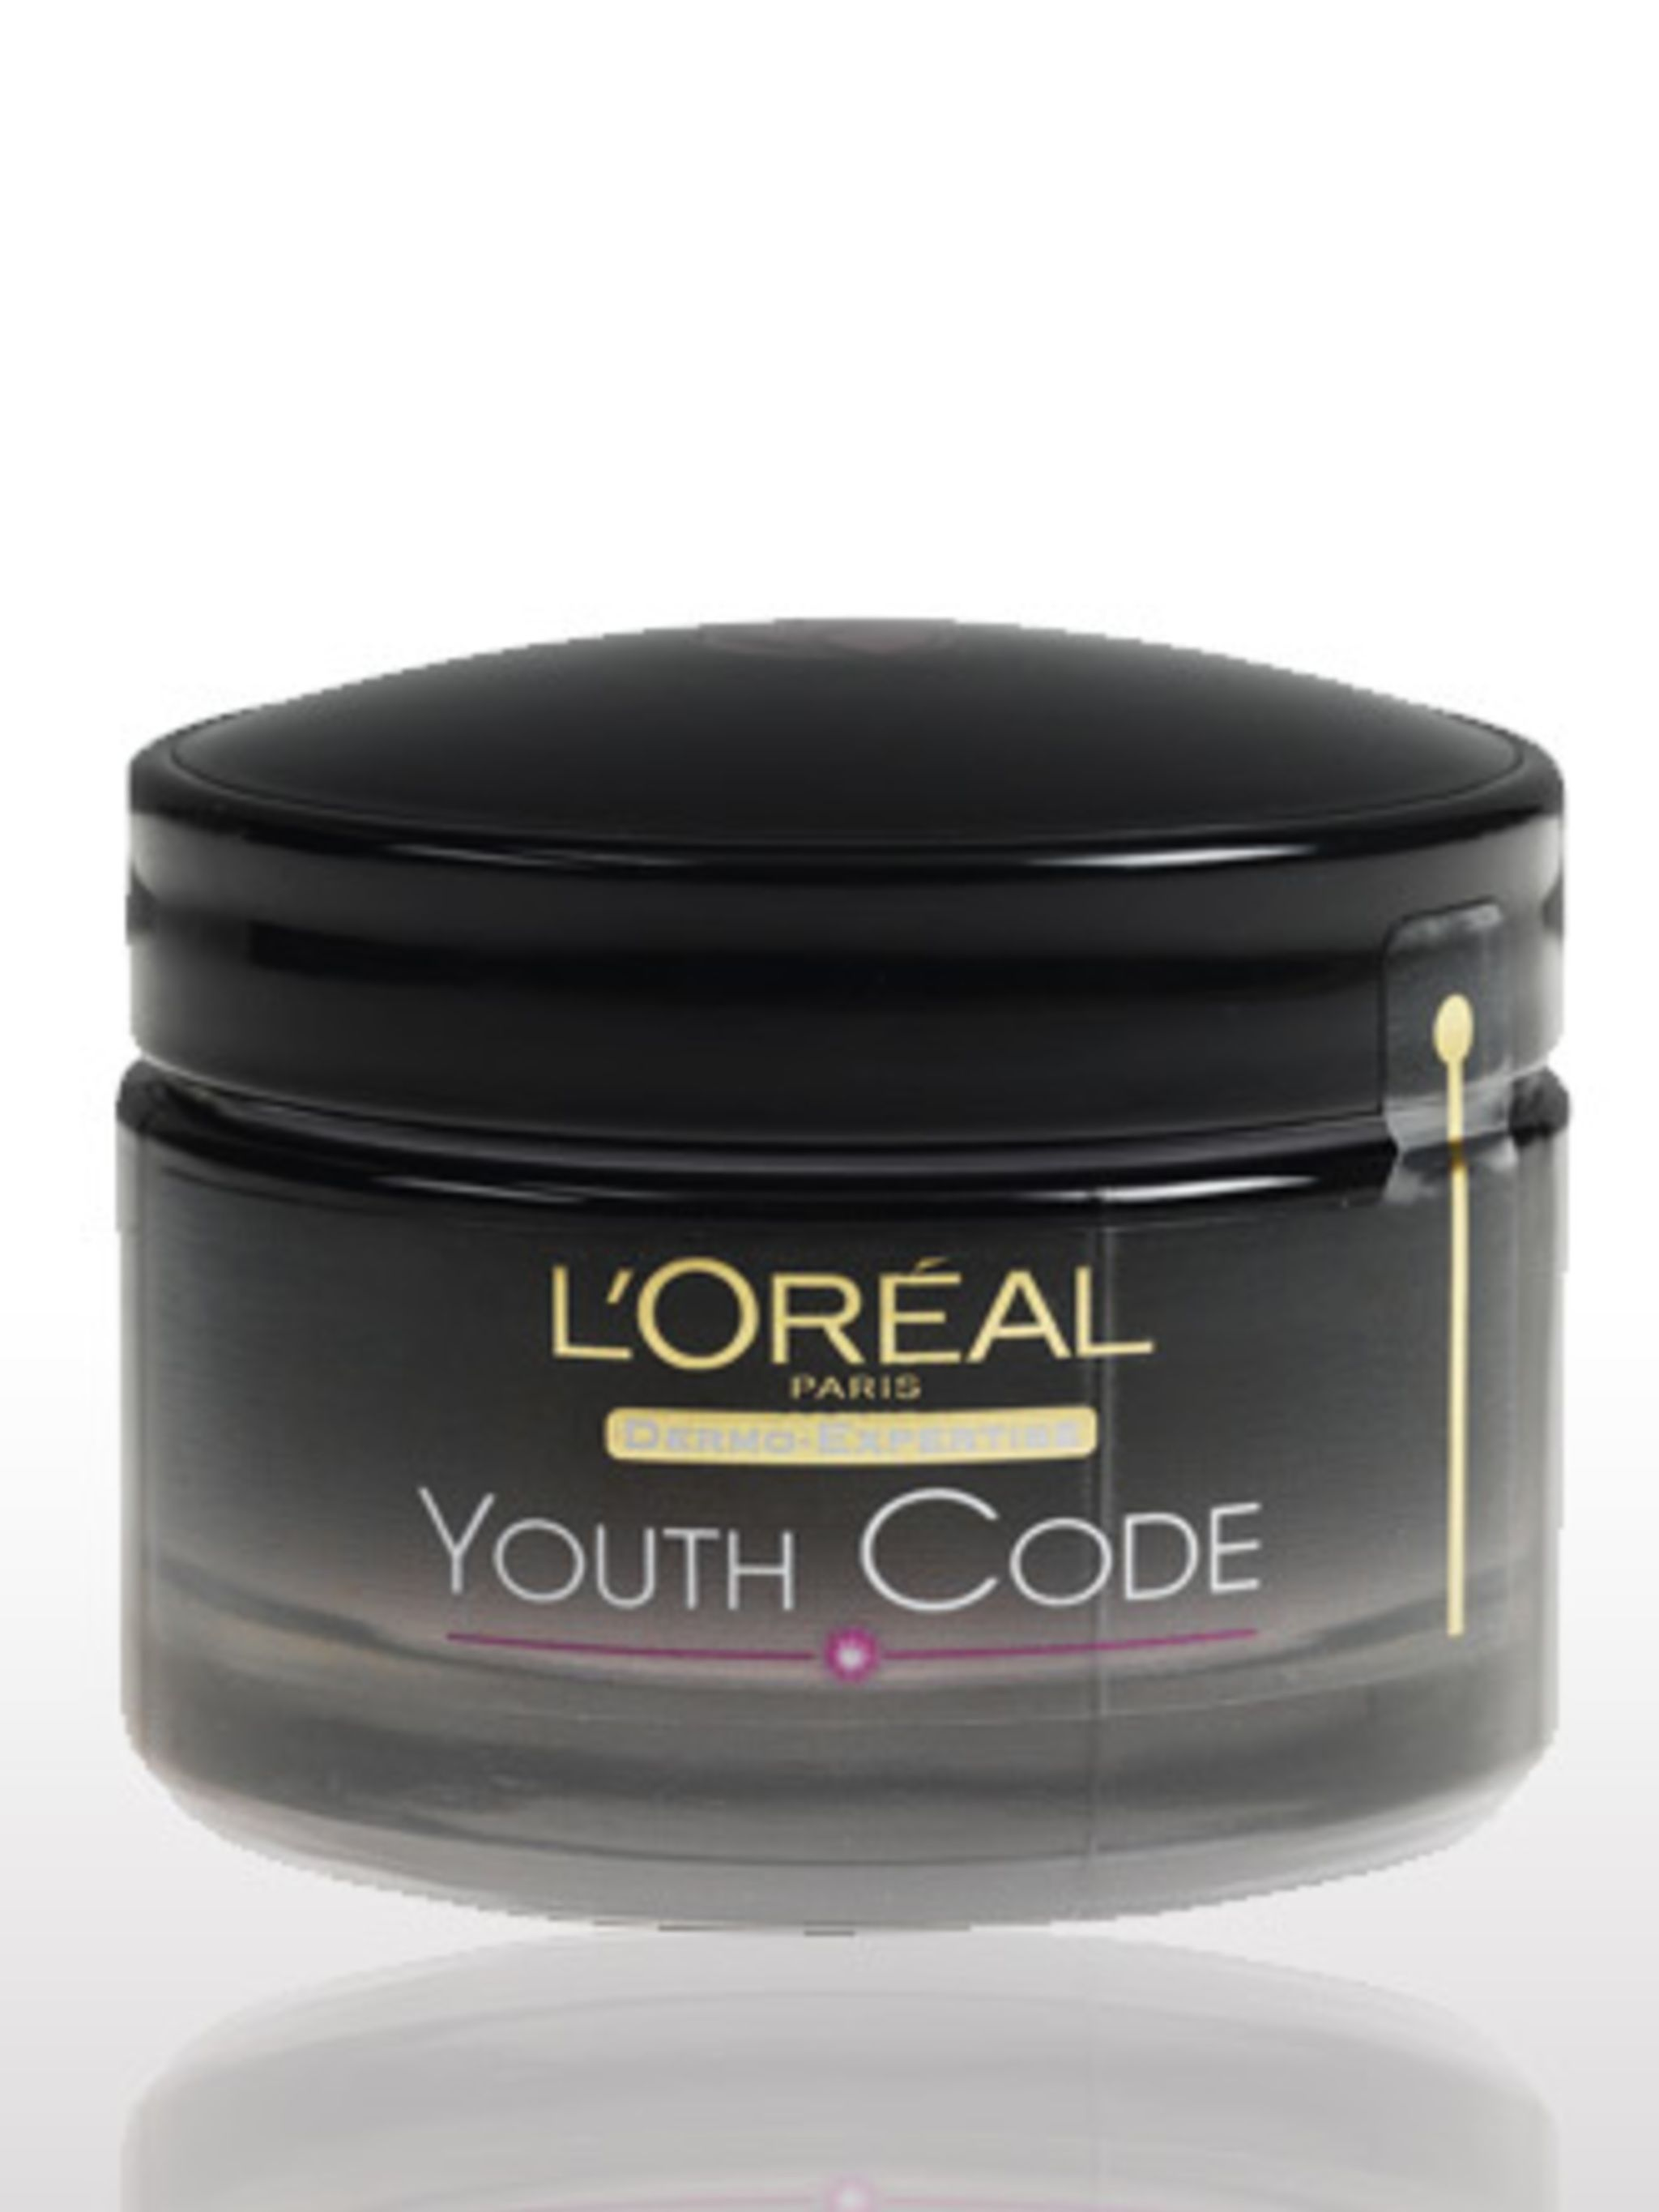 <p>This super punchy anti-aging cream comes with an affordable price point. I wax lyrical about investing in your skin, you only have one face after all, but a lot of the best concoctions come with a hefty price tag. The pro-gene technology in L'Oreal's Y